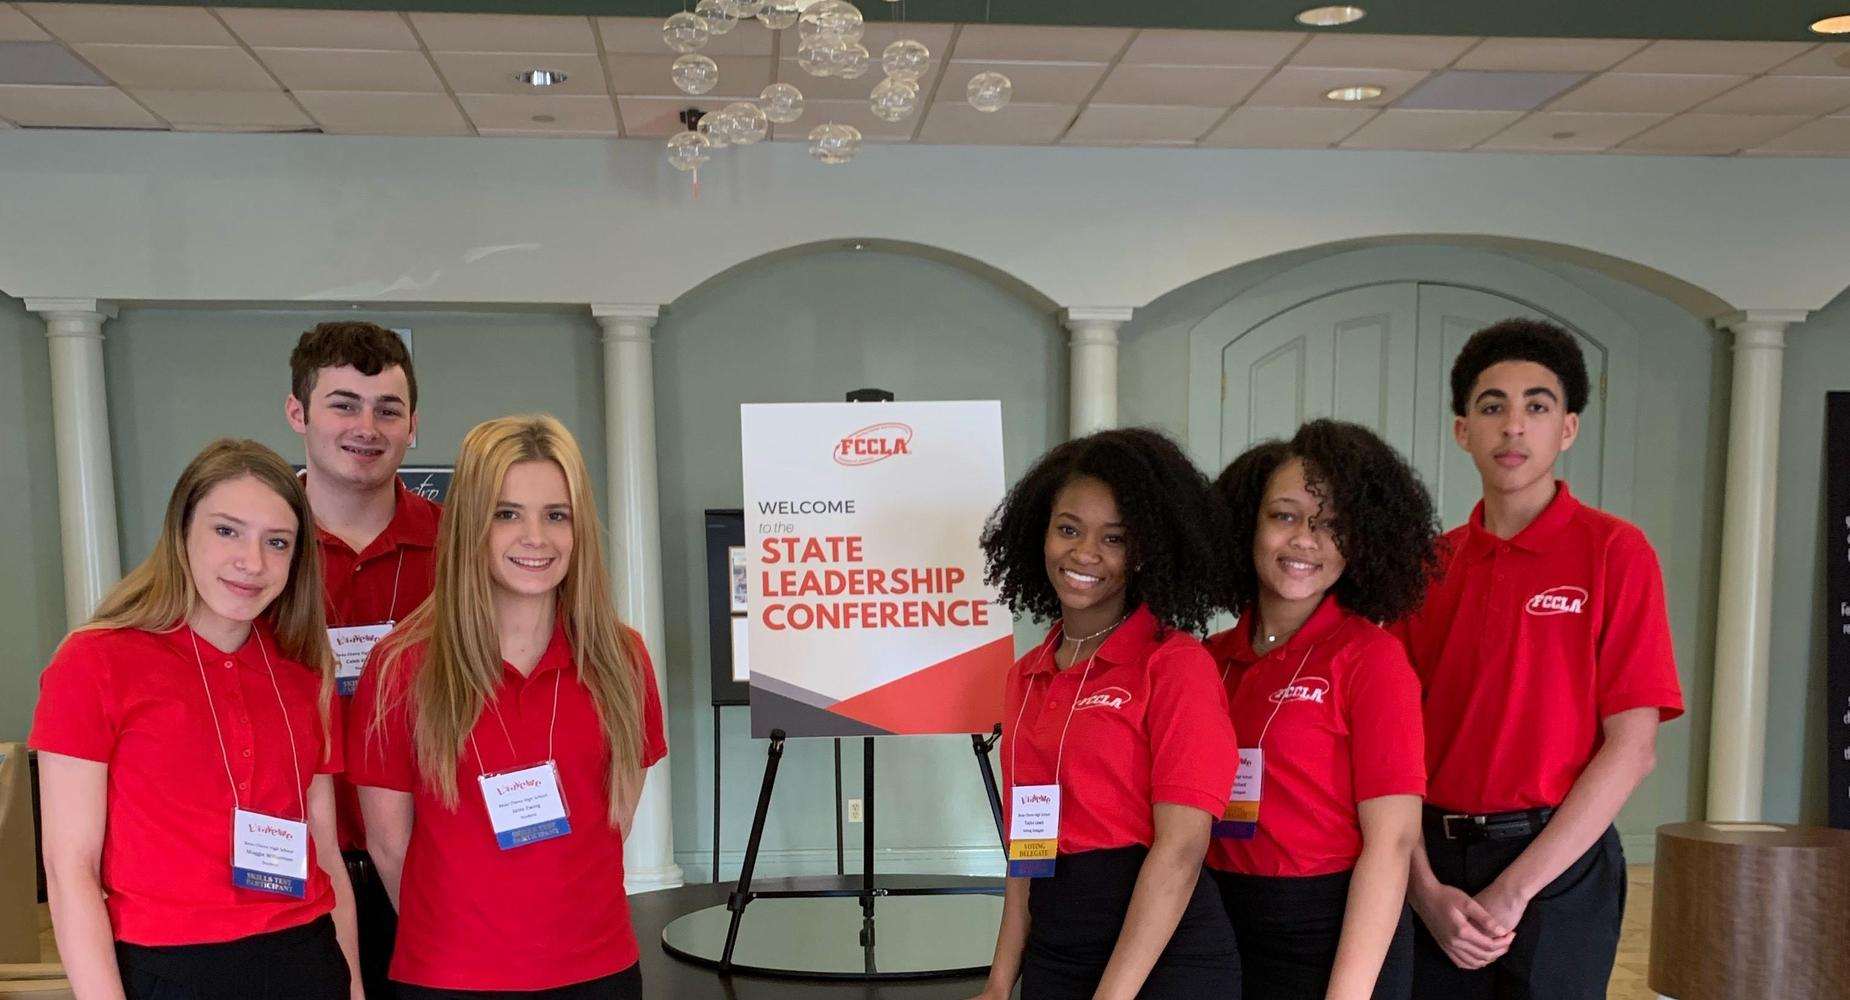 BCHS FCCLA members attended the FCCLA State Conference in Lafayette, Louisiana.    They are:  Caleb K., Janie E., Taylor L., India R., and Joshua T.